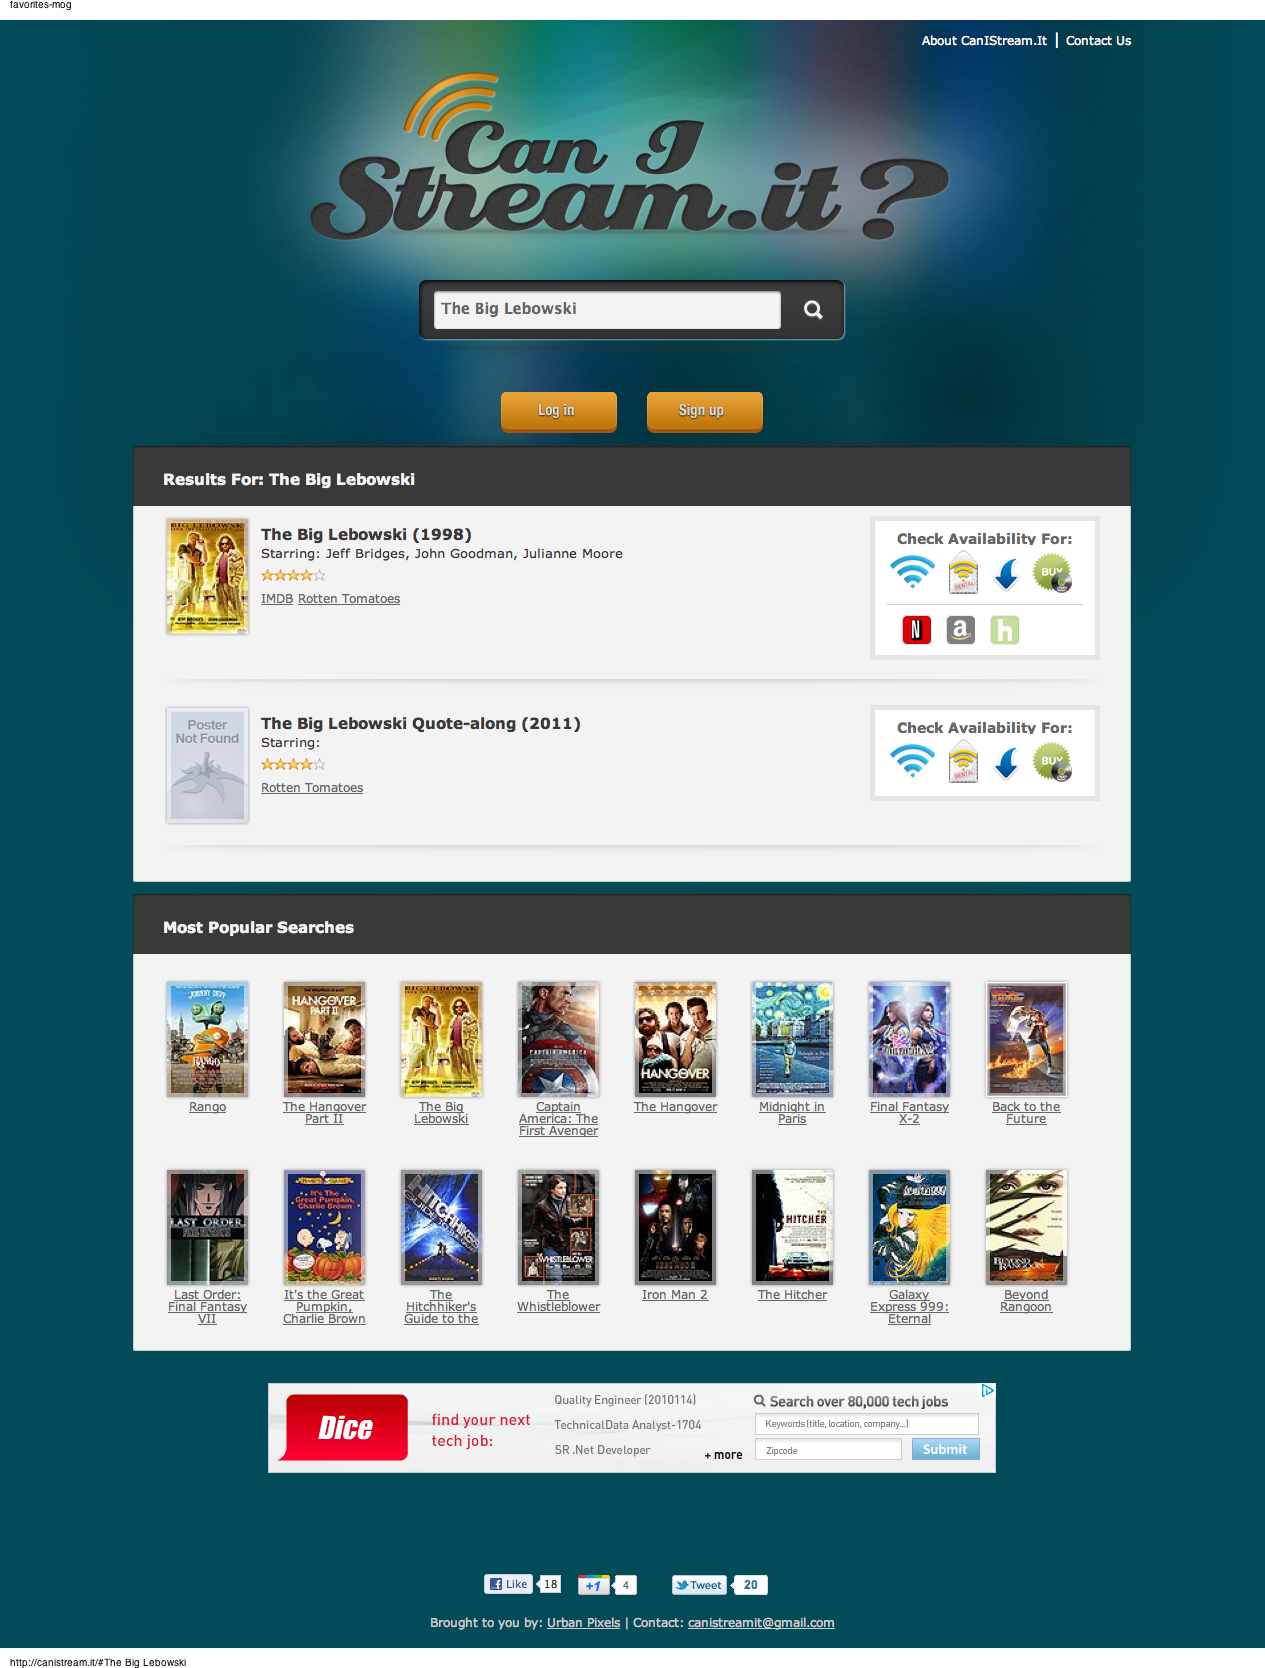 CanIStream.it Shows You Where You Can Stream, Rent, Download Or Buy Movies – TechCrunch